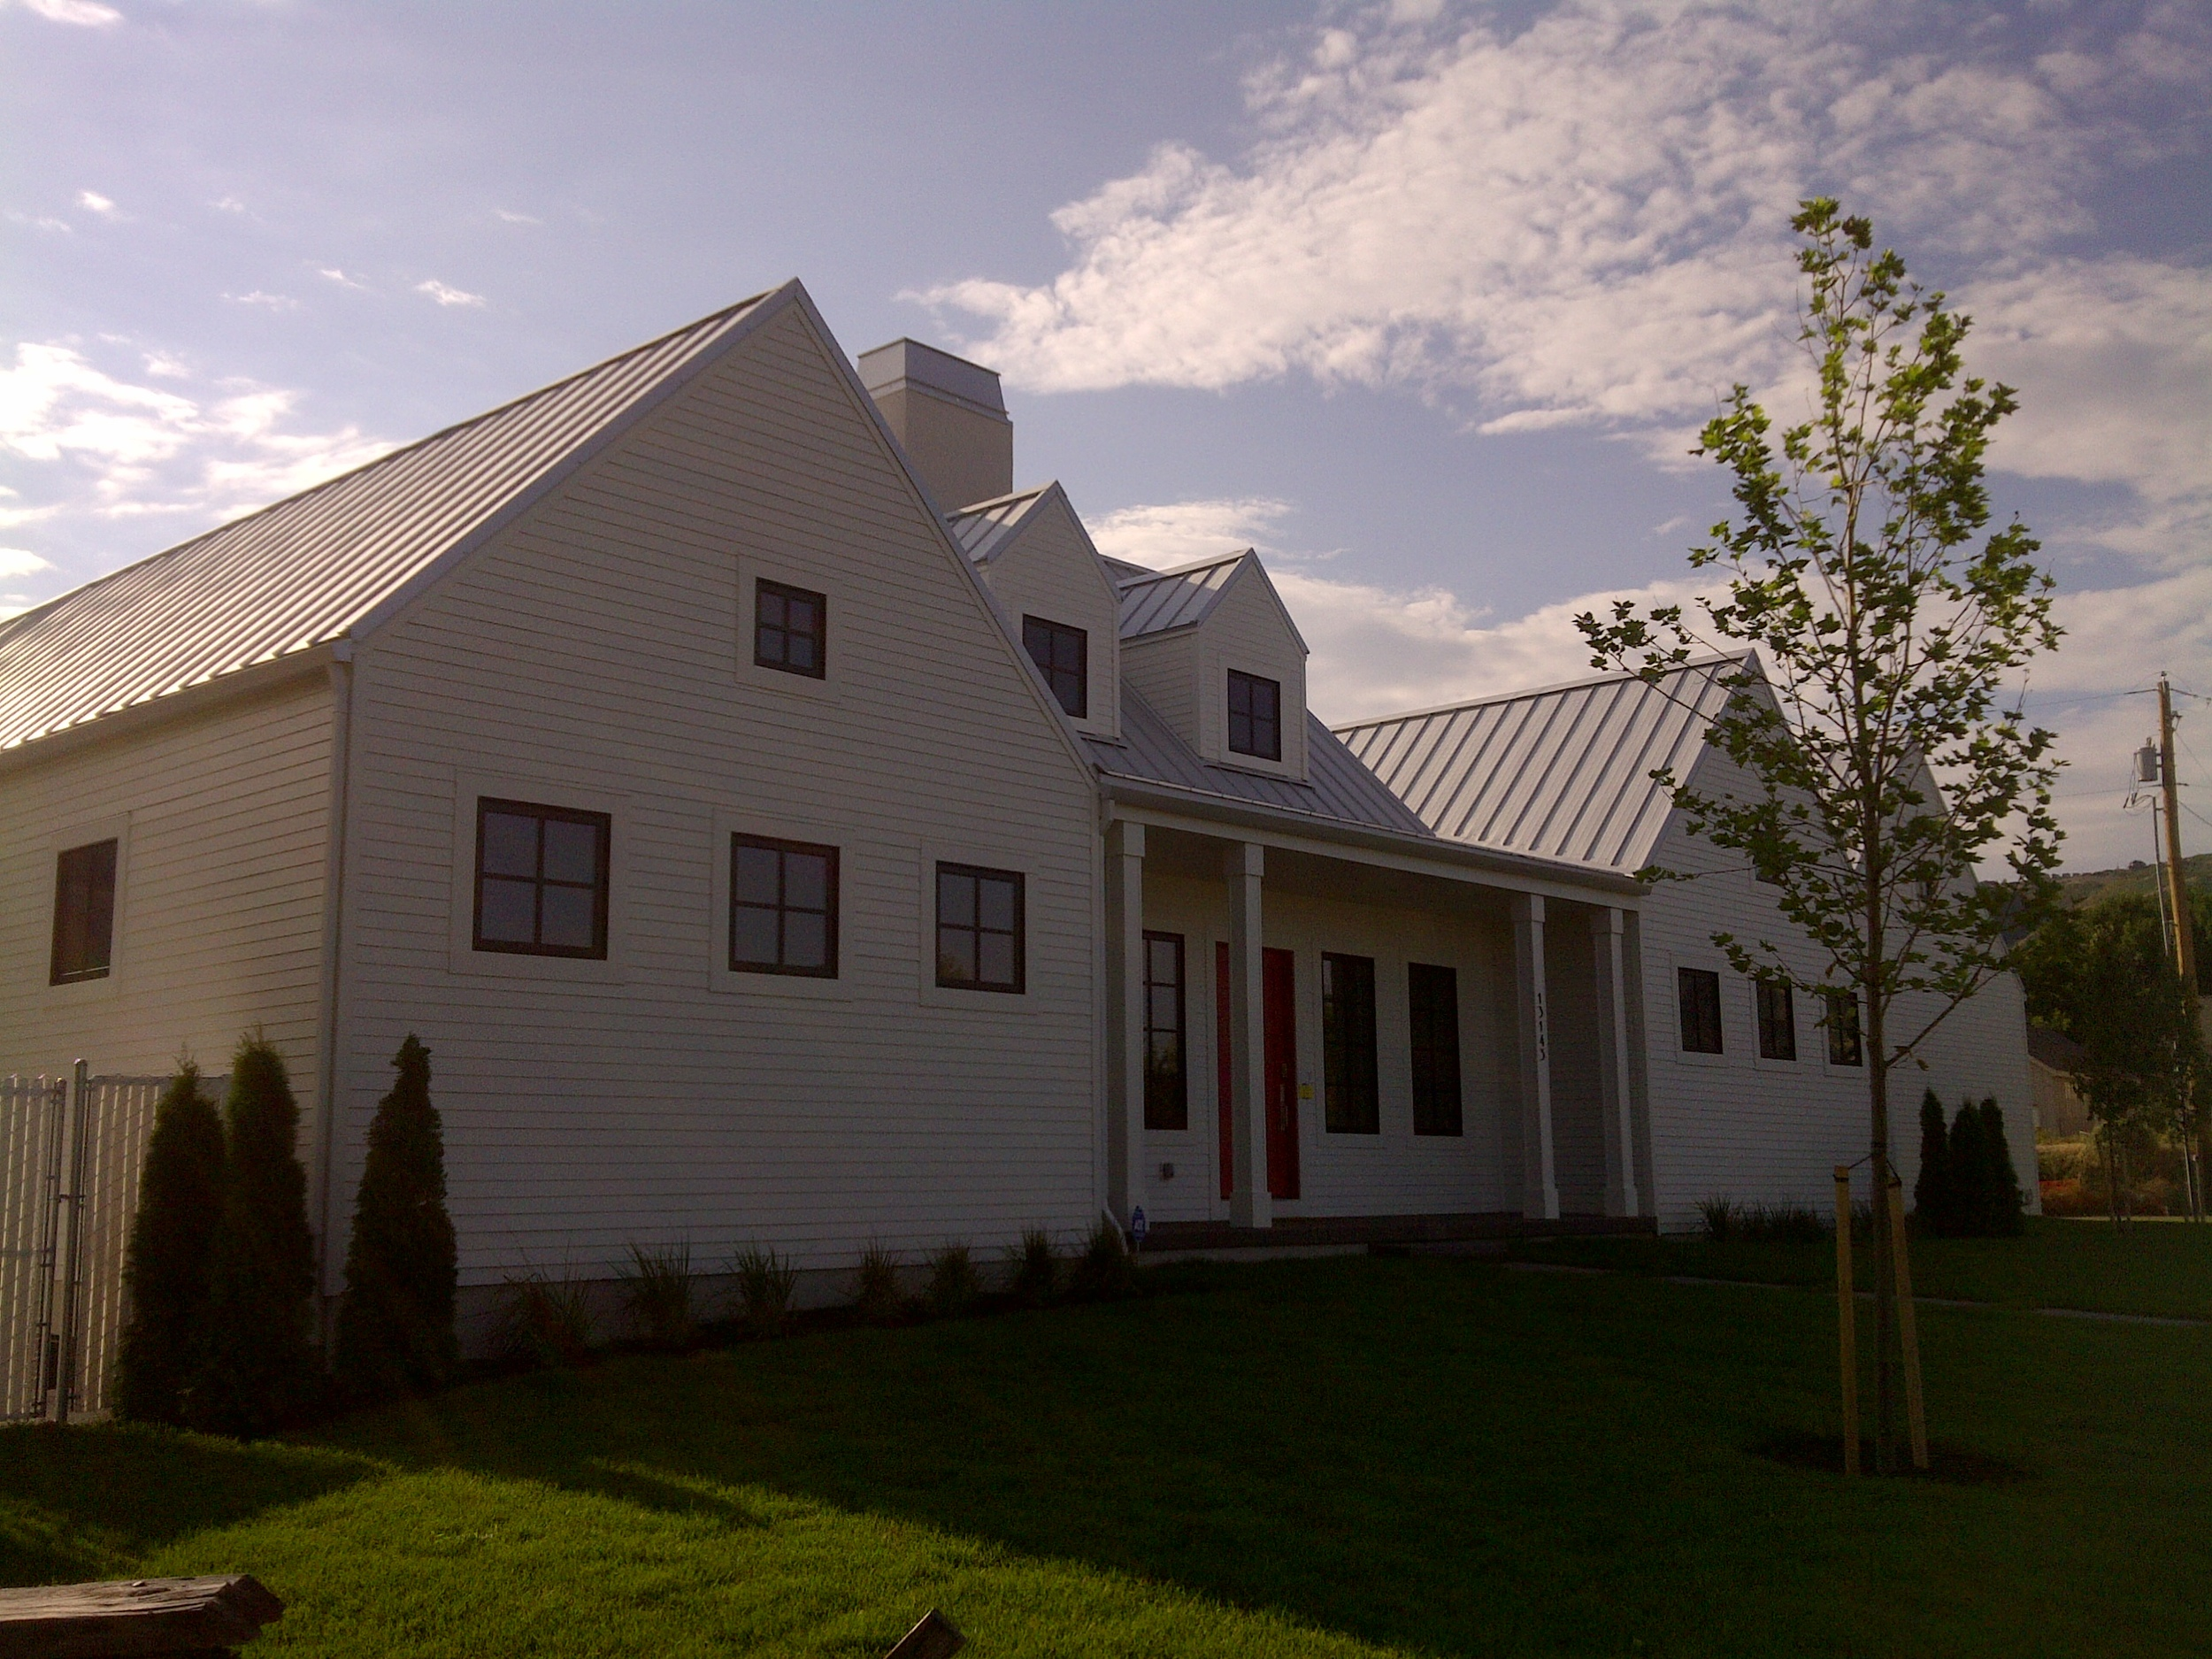 Fiber cement siding, white farm house